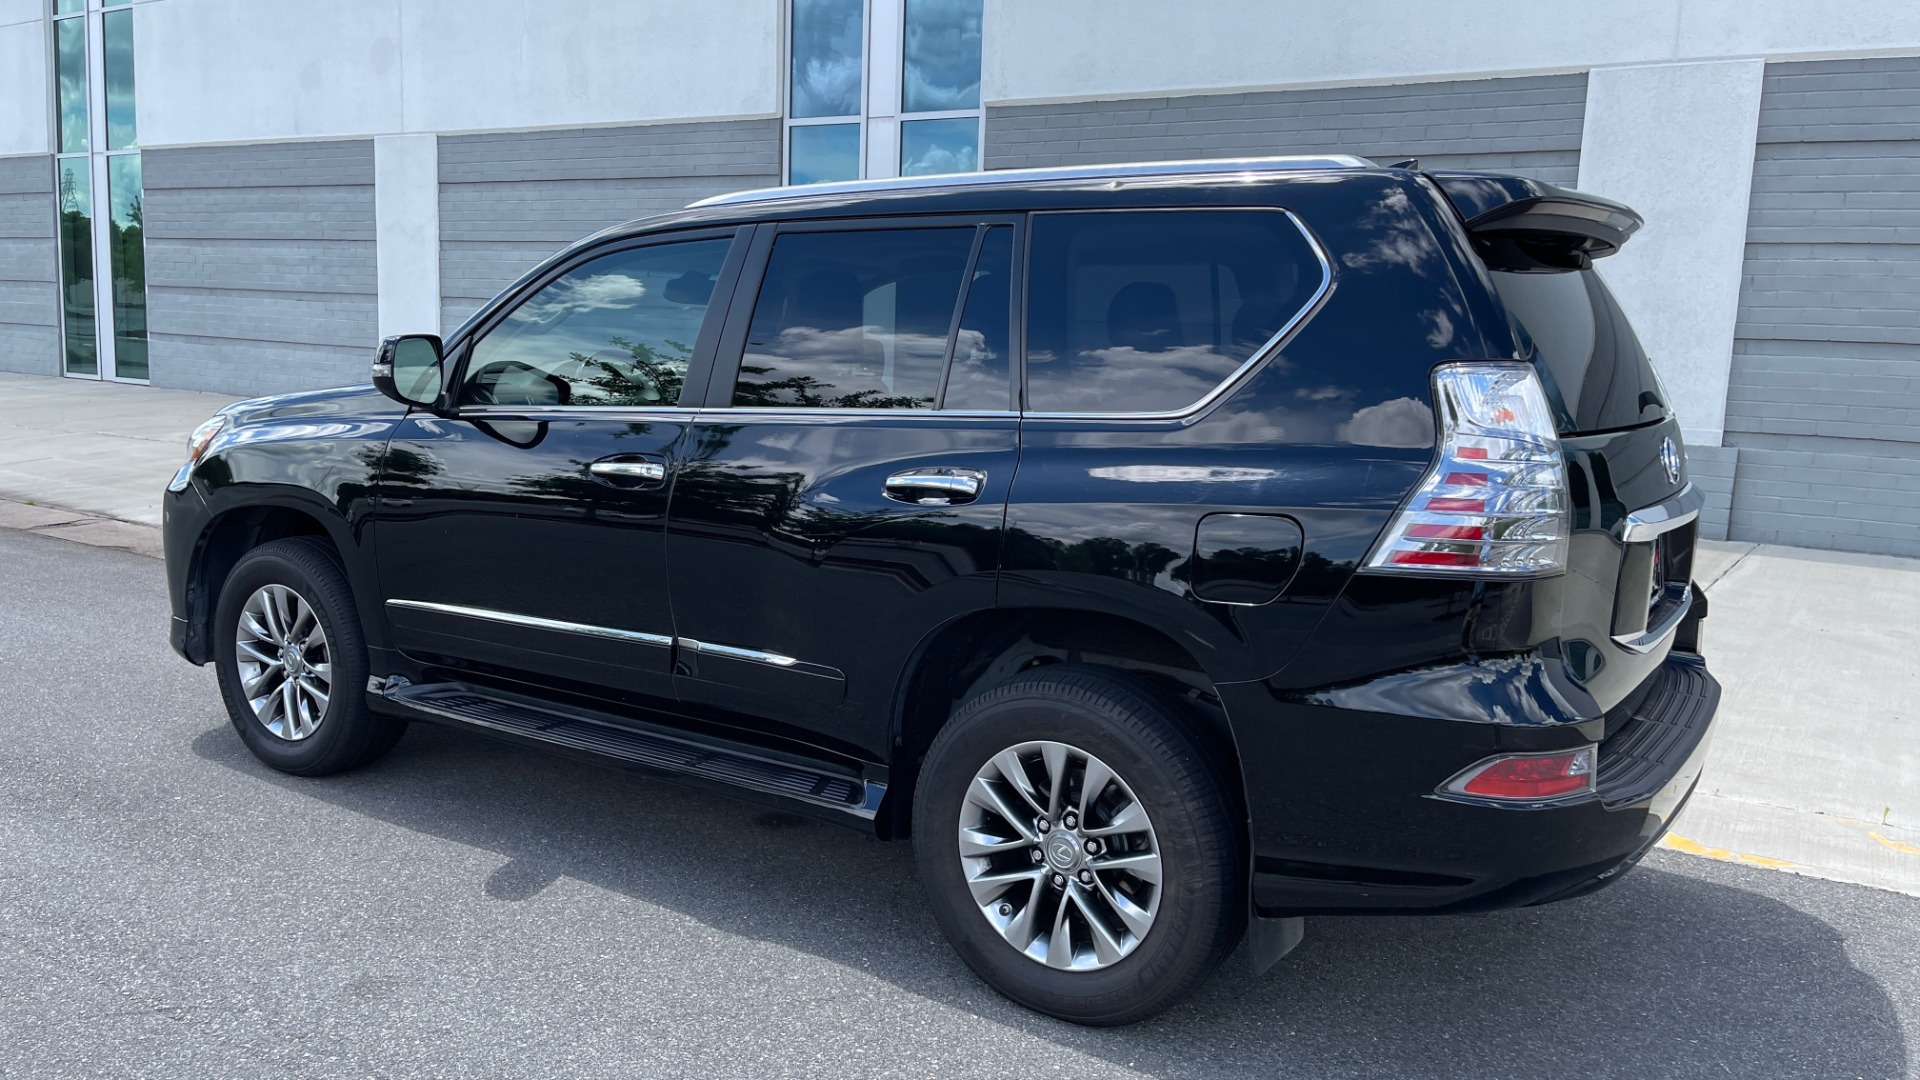 Used 2017 Lexus GX GX 460 LUXURY / AWD / NAV / SUNROOF / MARK LEV SND / REARVIEW for sale $37,995 at Formula Imports in Charlotte NC 28227 4